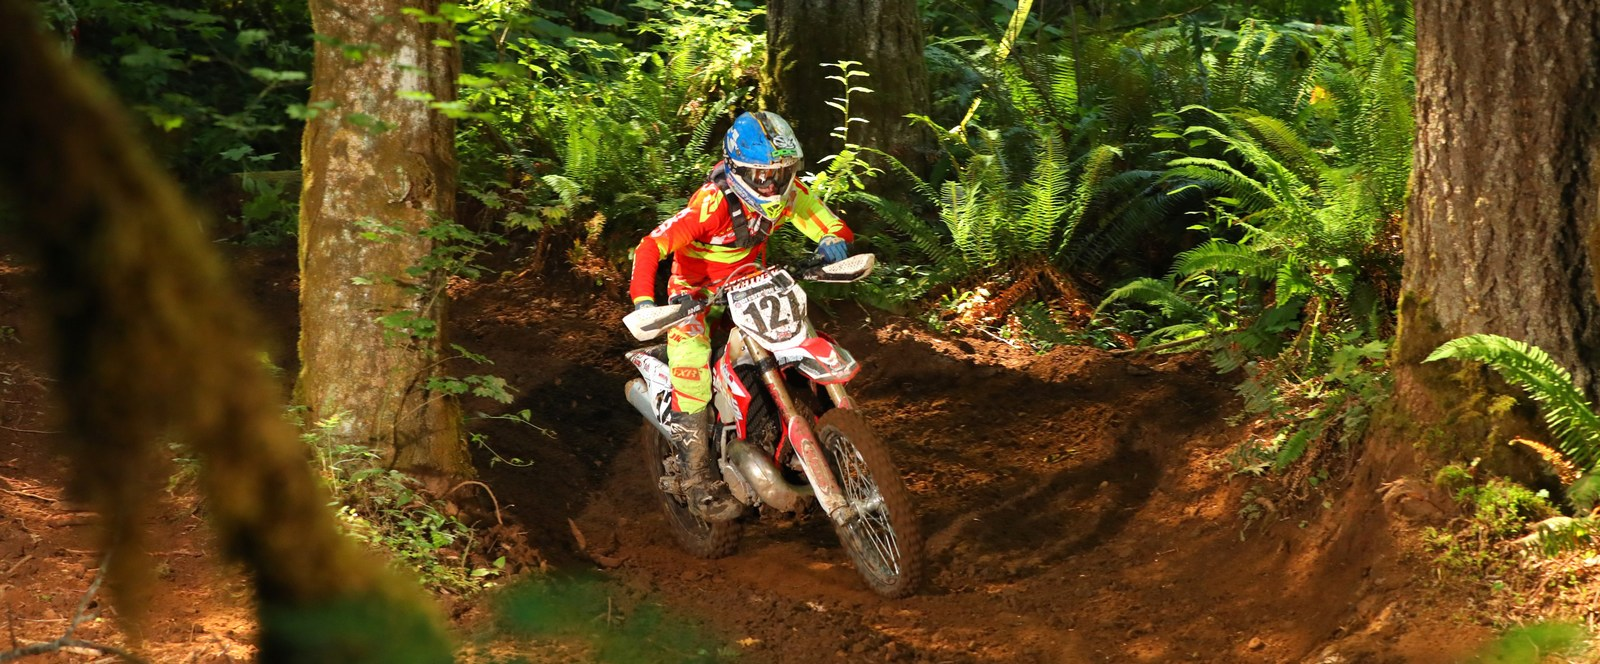 2019-08-mateo-oliveria-bike-worcs-racing